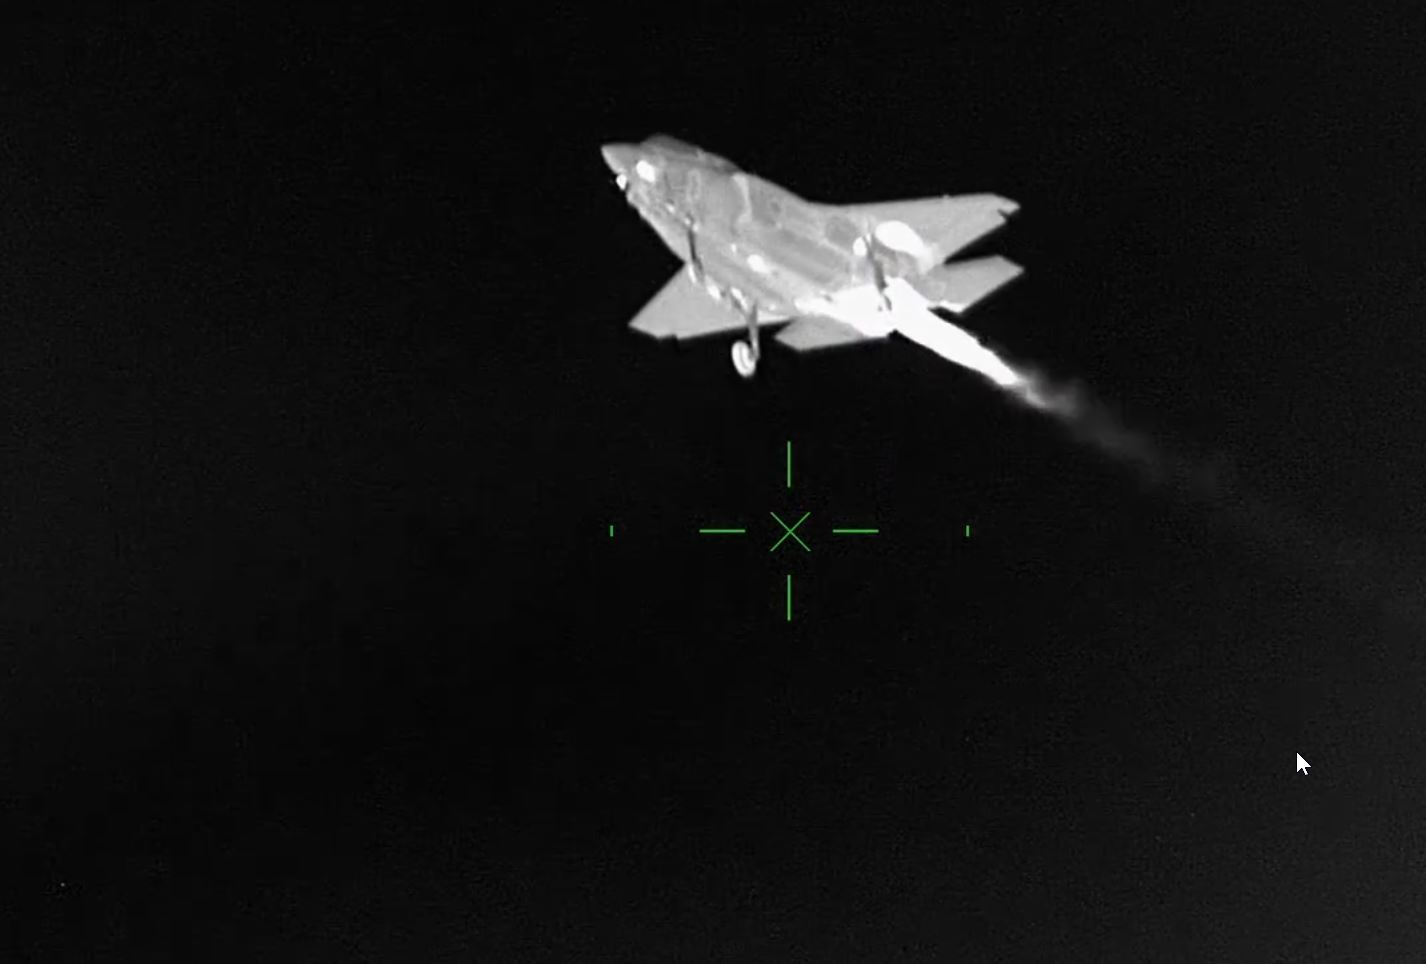 https://www.defencetalk.com/wp-content/uploads/2016/08/f-35-flir-radar-stealth-detection.jpg